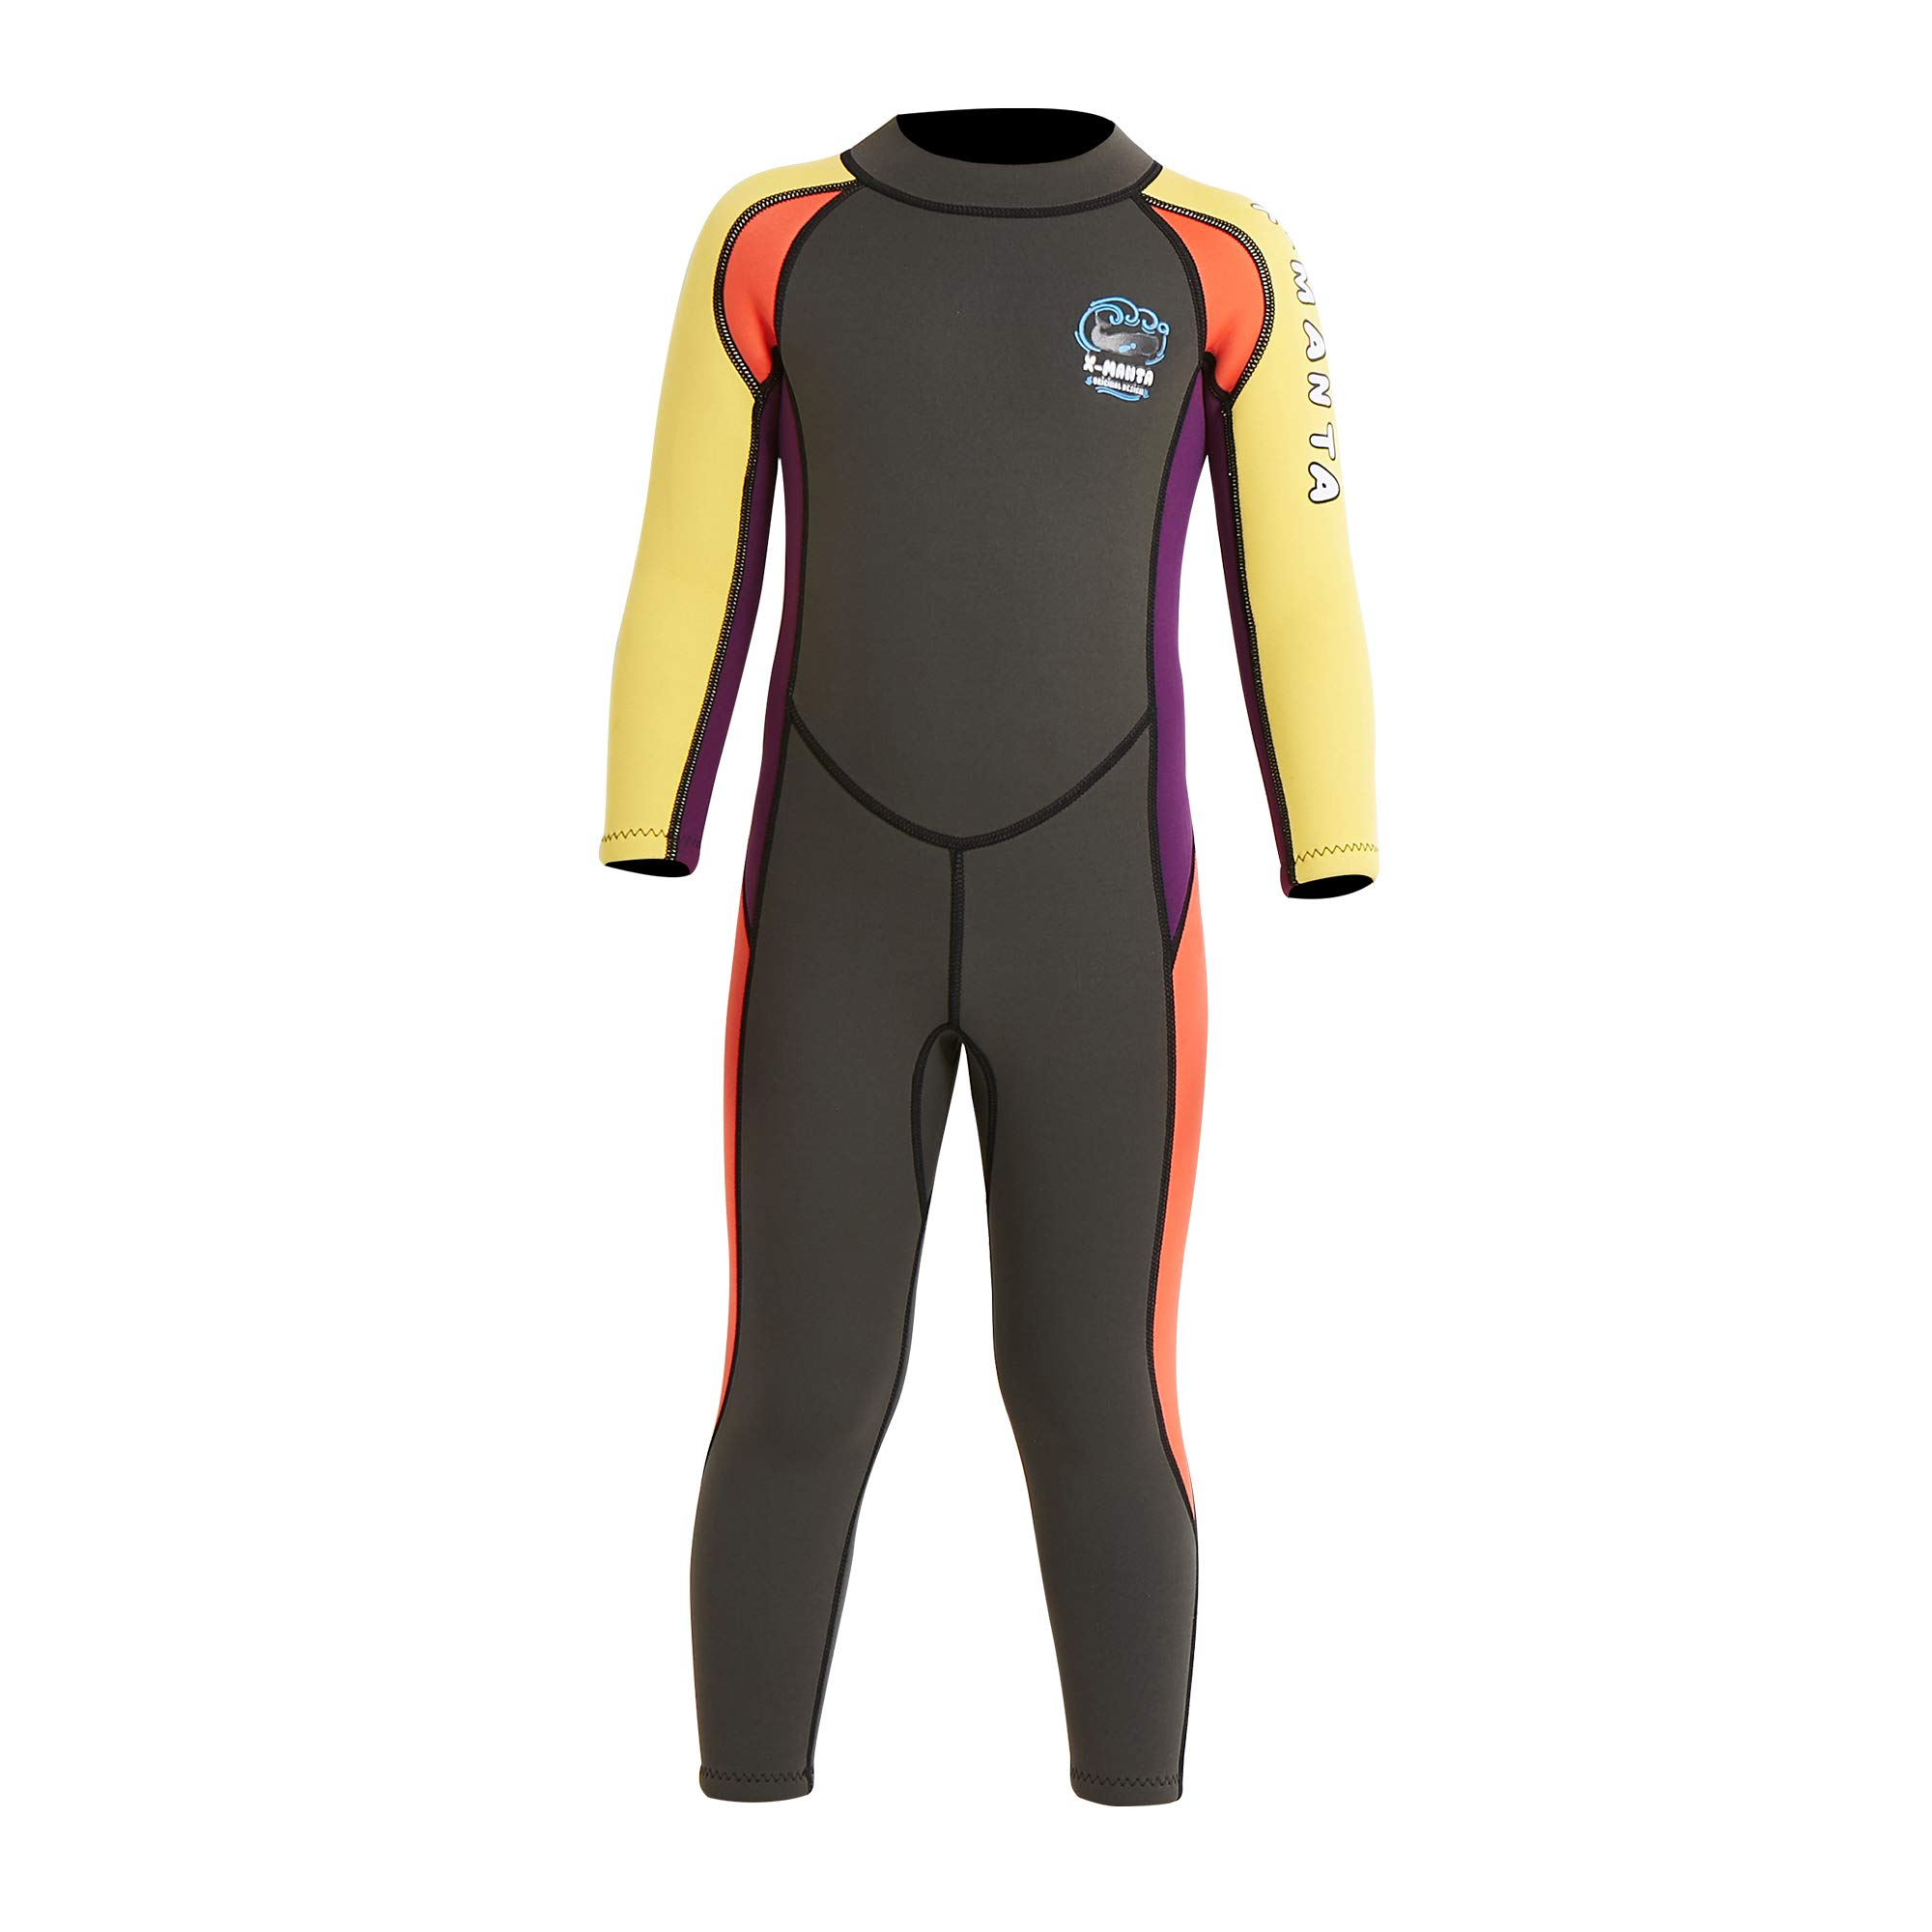 Dark Lightning Kids Wetsuit Full Thermal Suit, Boys Neoprene One Piece Fishing Suits, 2mm Long Sleeve Swimsuit for Children Scuba Diving, Surfing, Paddling, Swimming, Grey,S Size